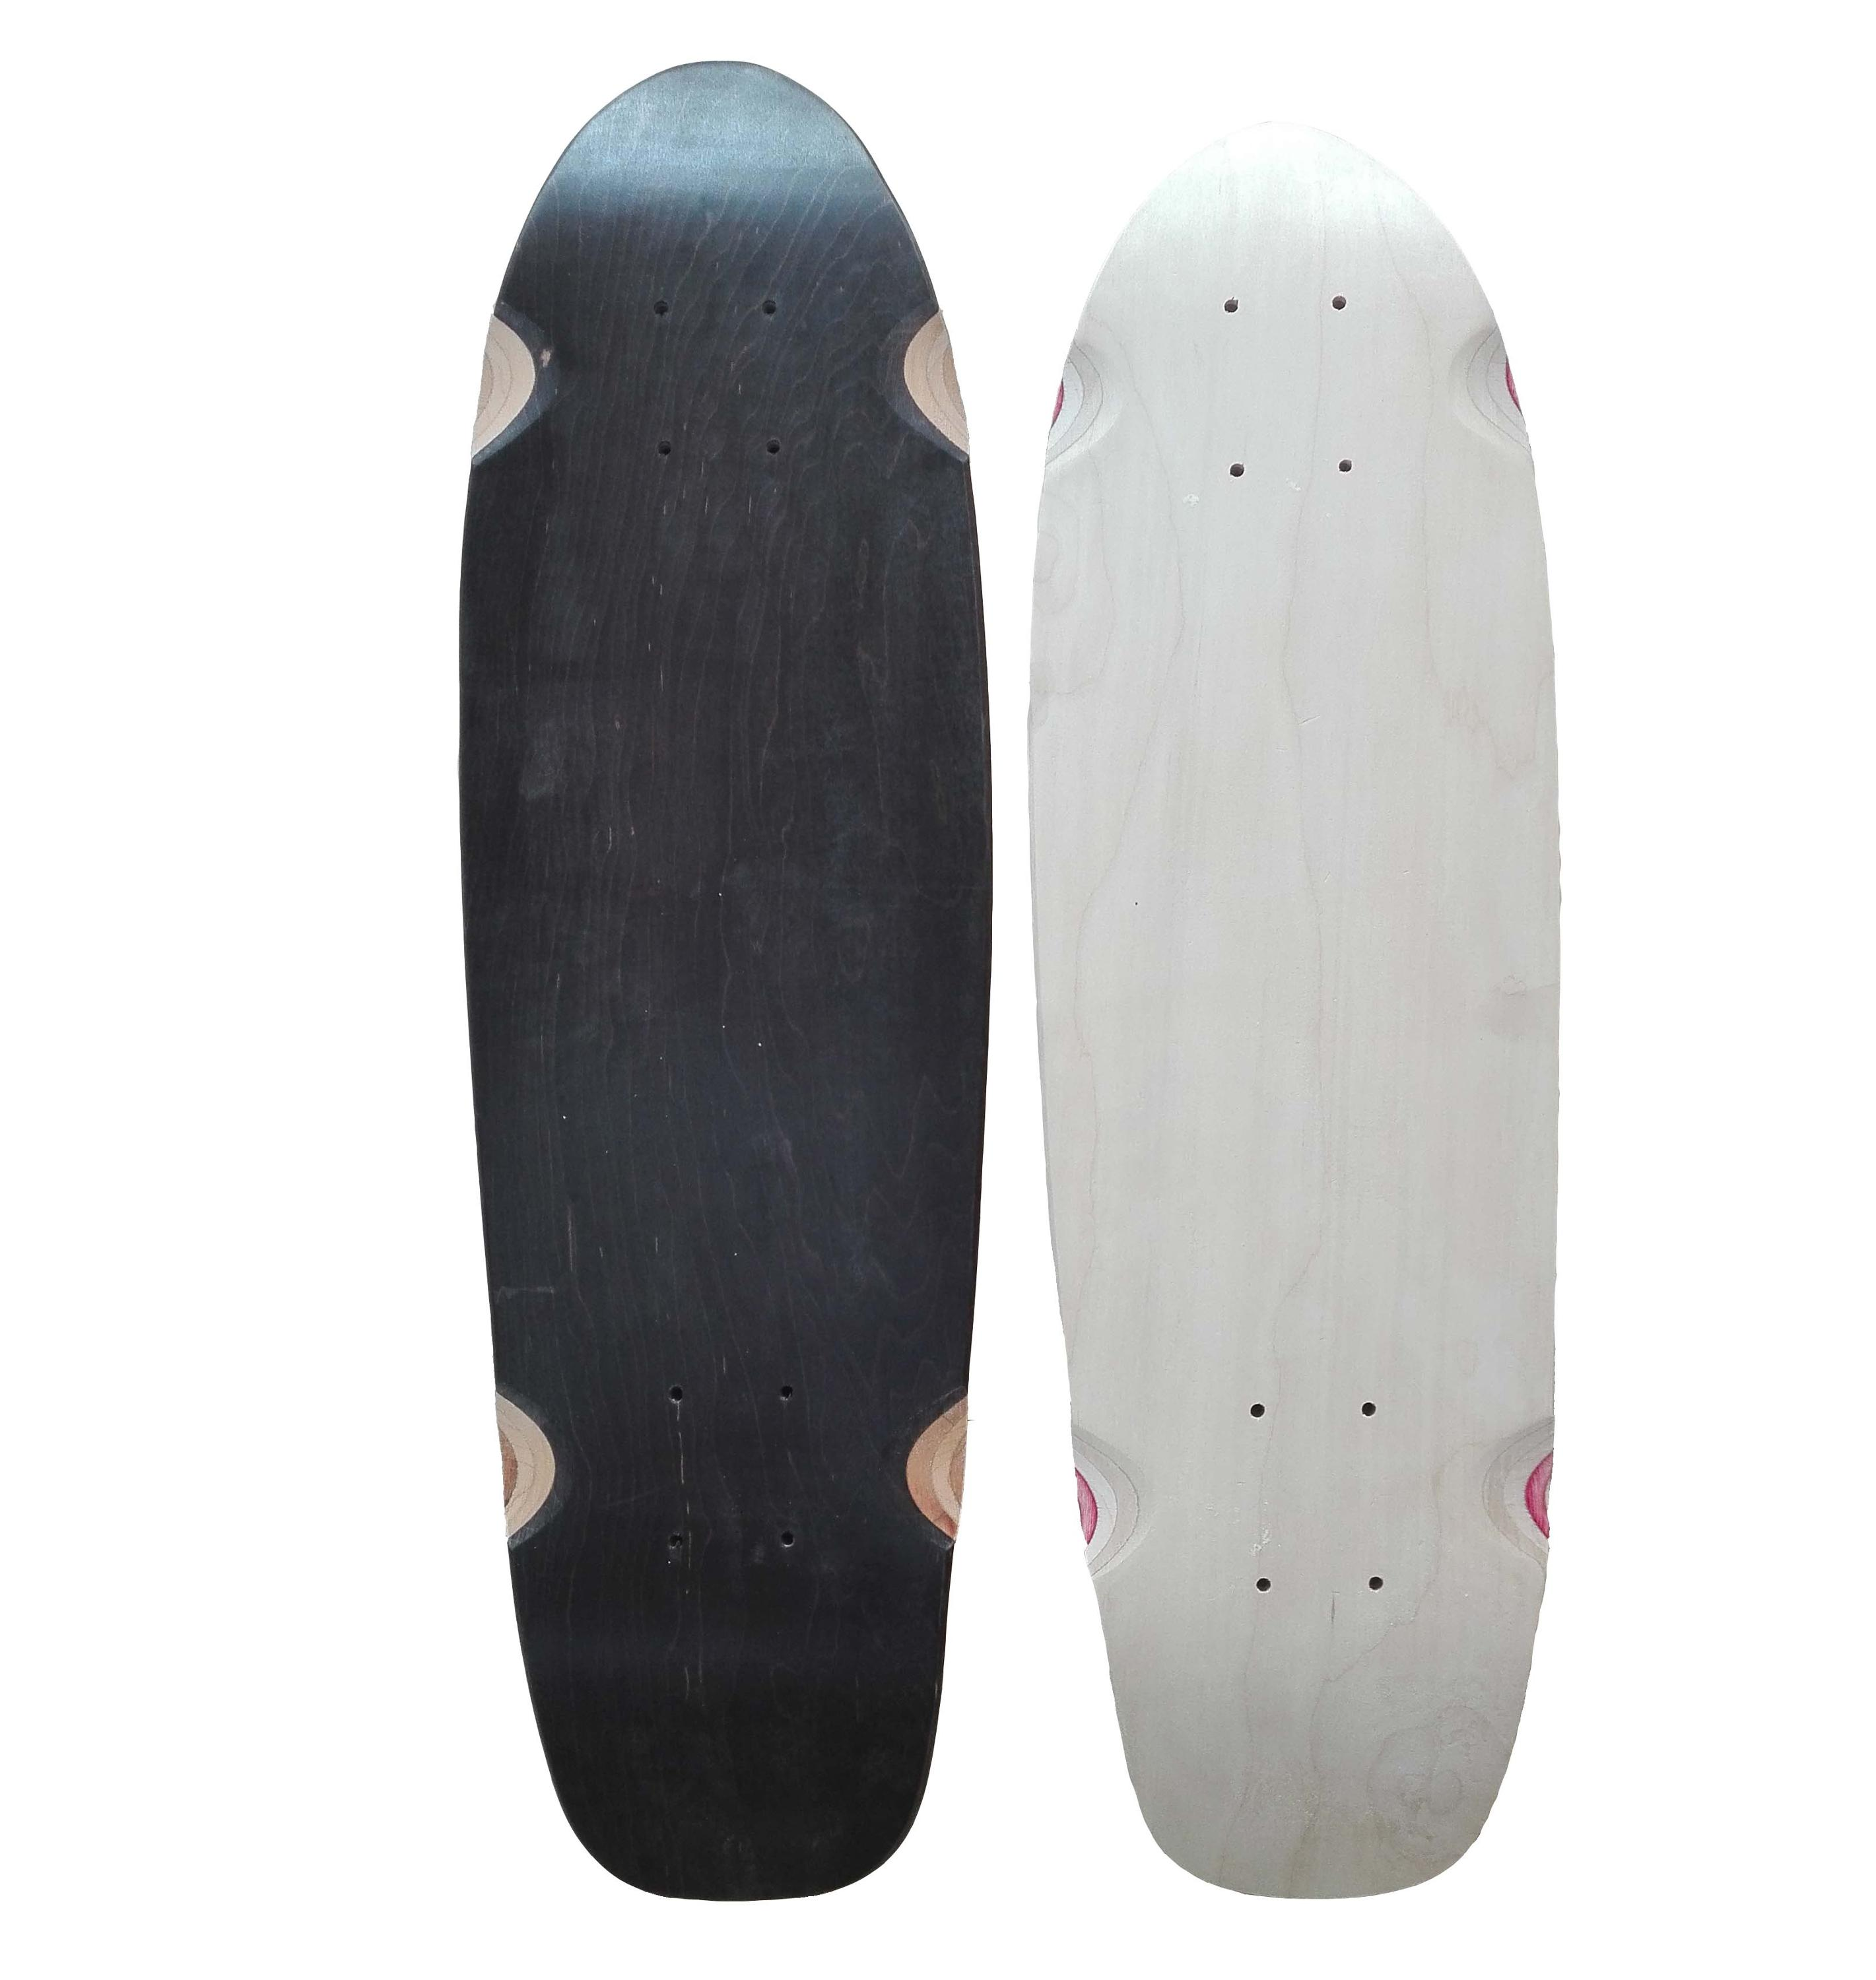 Cruiser 28*8inch 7ply canadian maple deck high quality cruiser skateboard deck with dye color